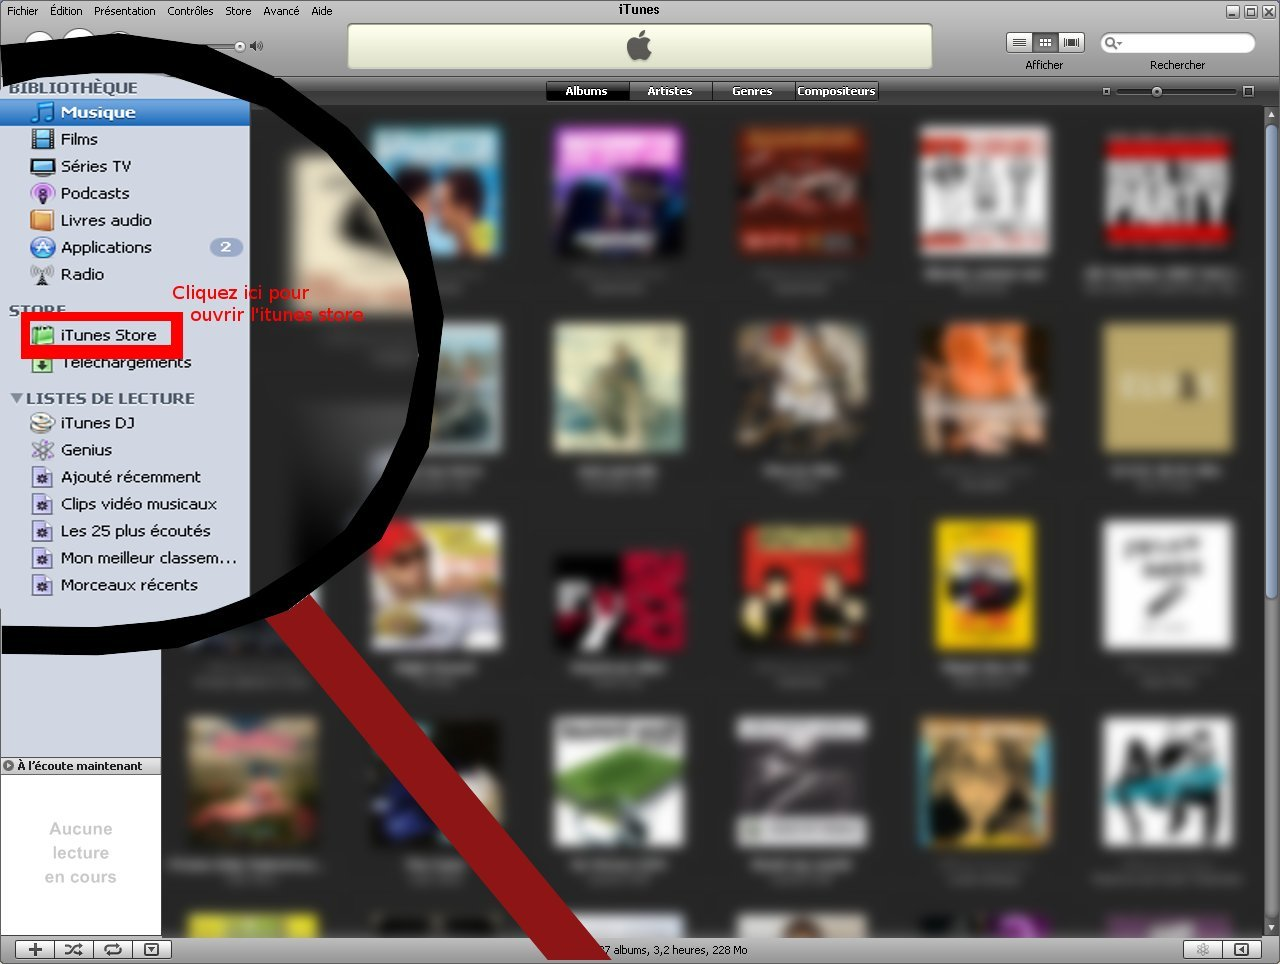 ouvrir l'itunes store